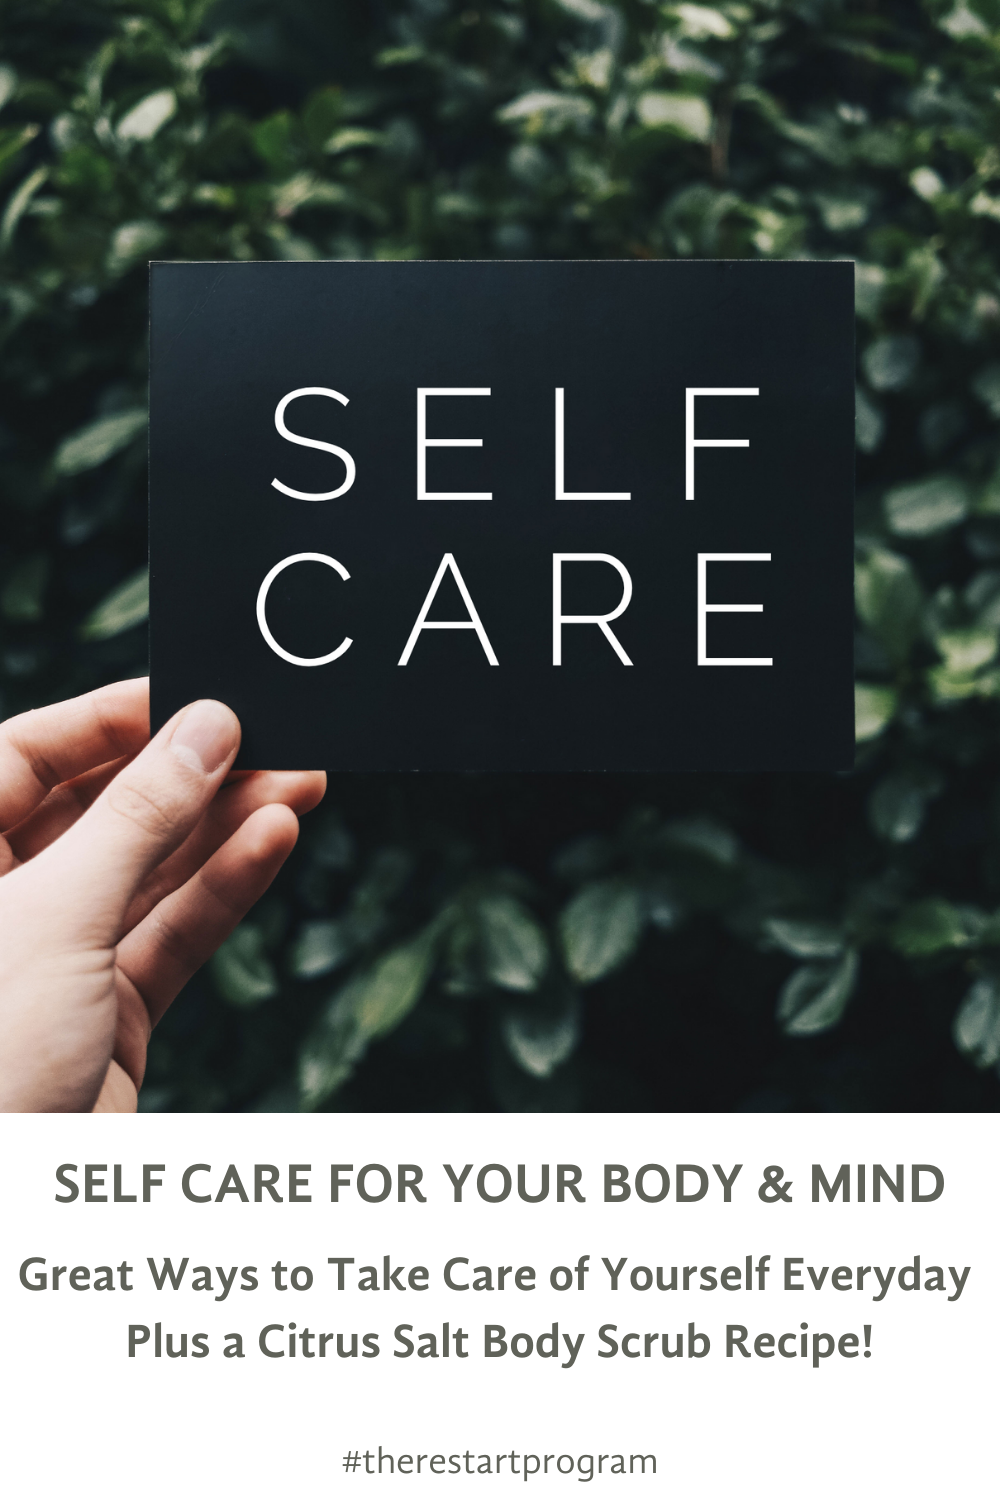 SELF CARE FOR YOUR BODY AND MIND Great Ways to Take Care of Yourself Everyday